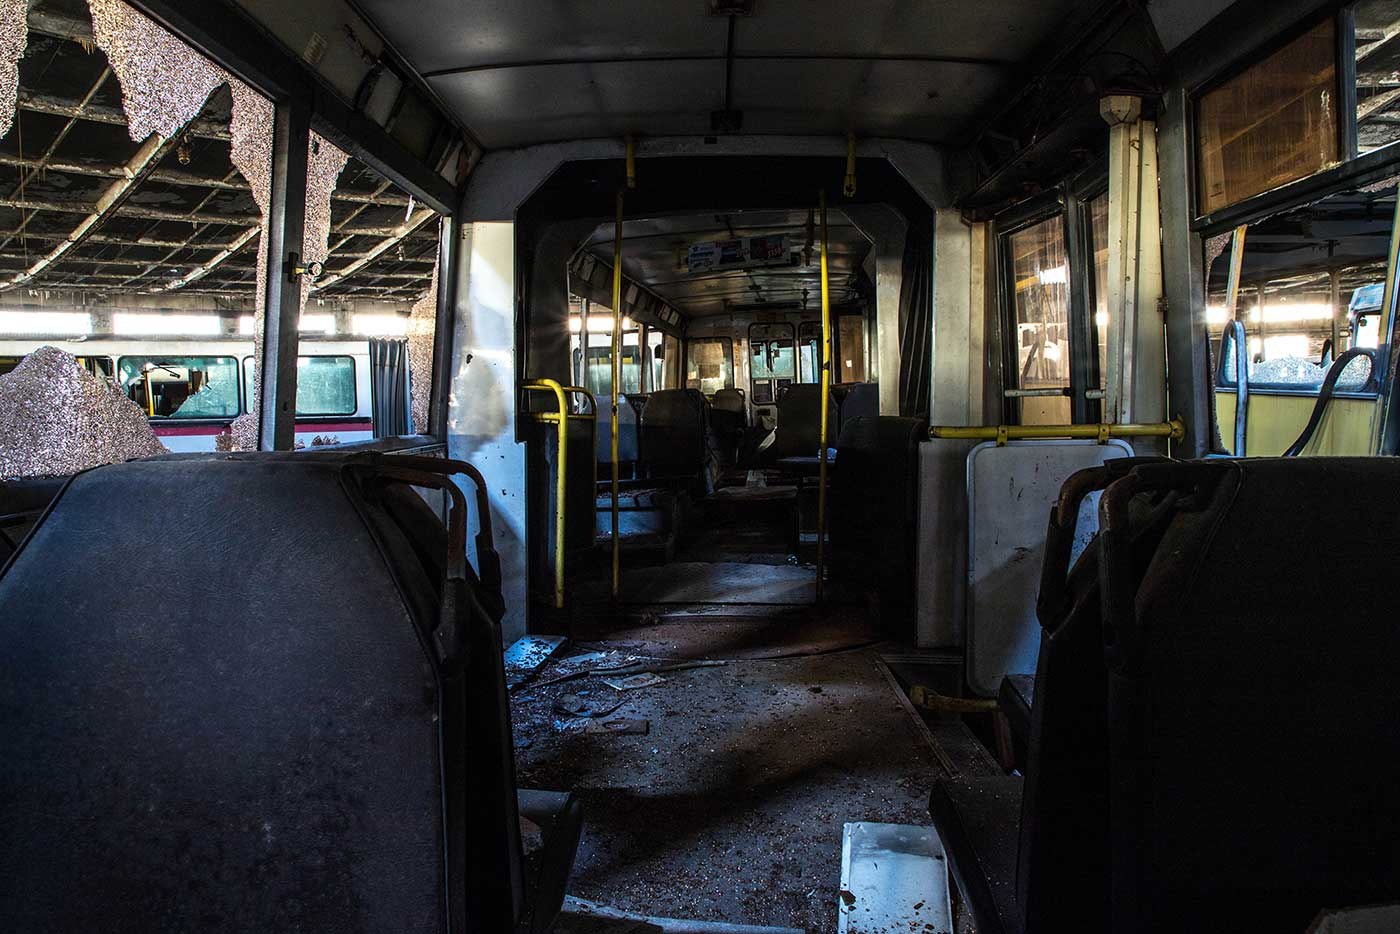 Inside the remains of an articulated urban bus. Autobus Park №7: the abandoned bus depot in Kyiv, Ukraine.